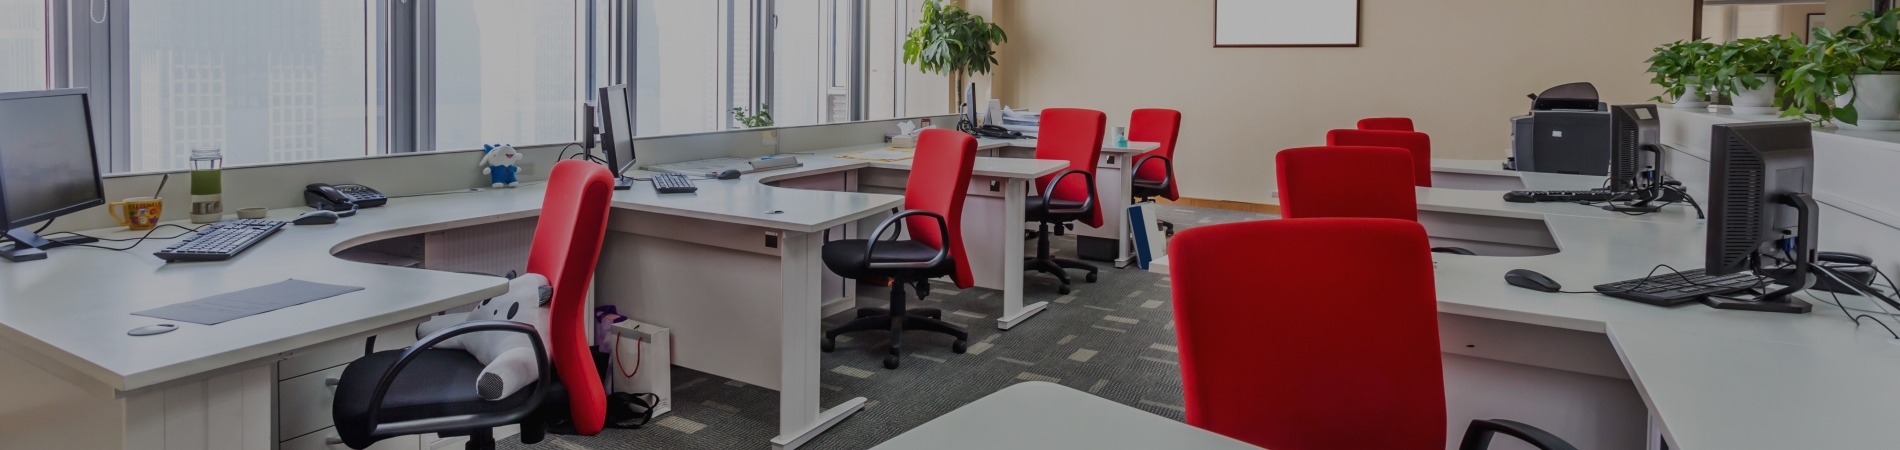 Office Movers | Corporate Relocation Services U0026 Workplace Change Support